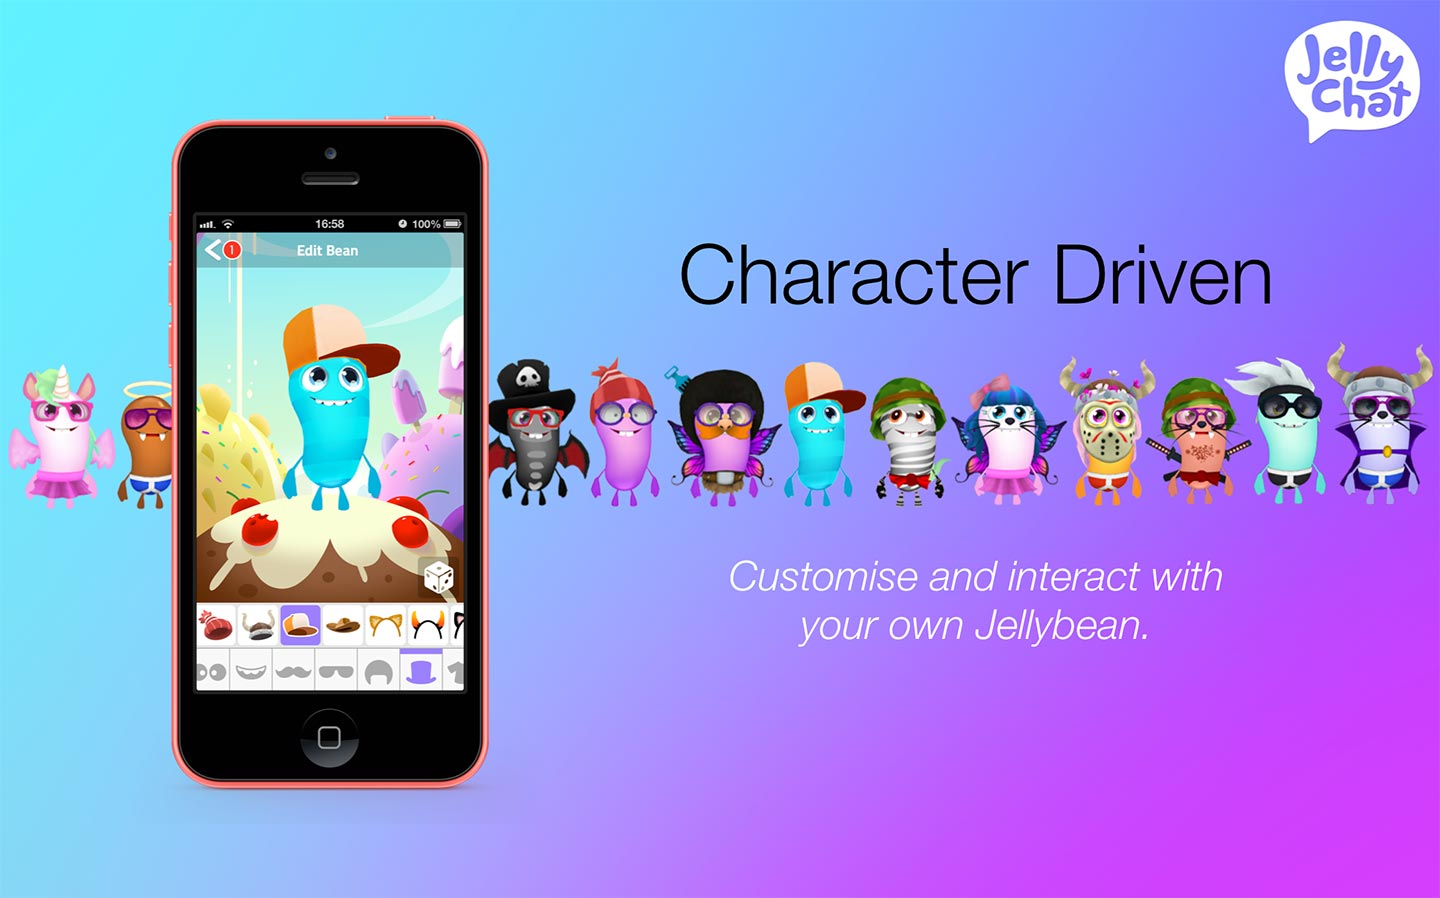 JellyChat v1.0 - Character driven